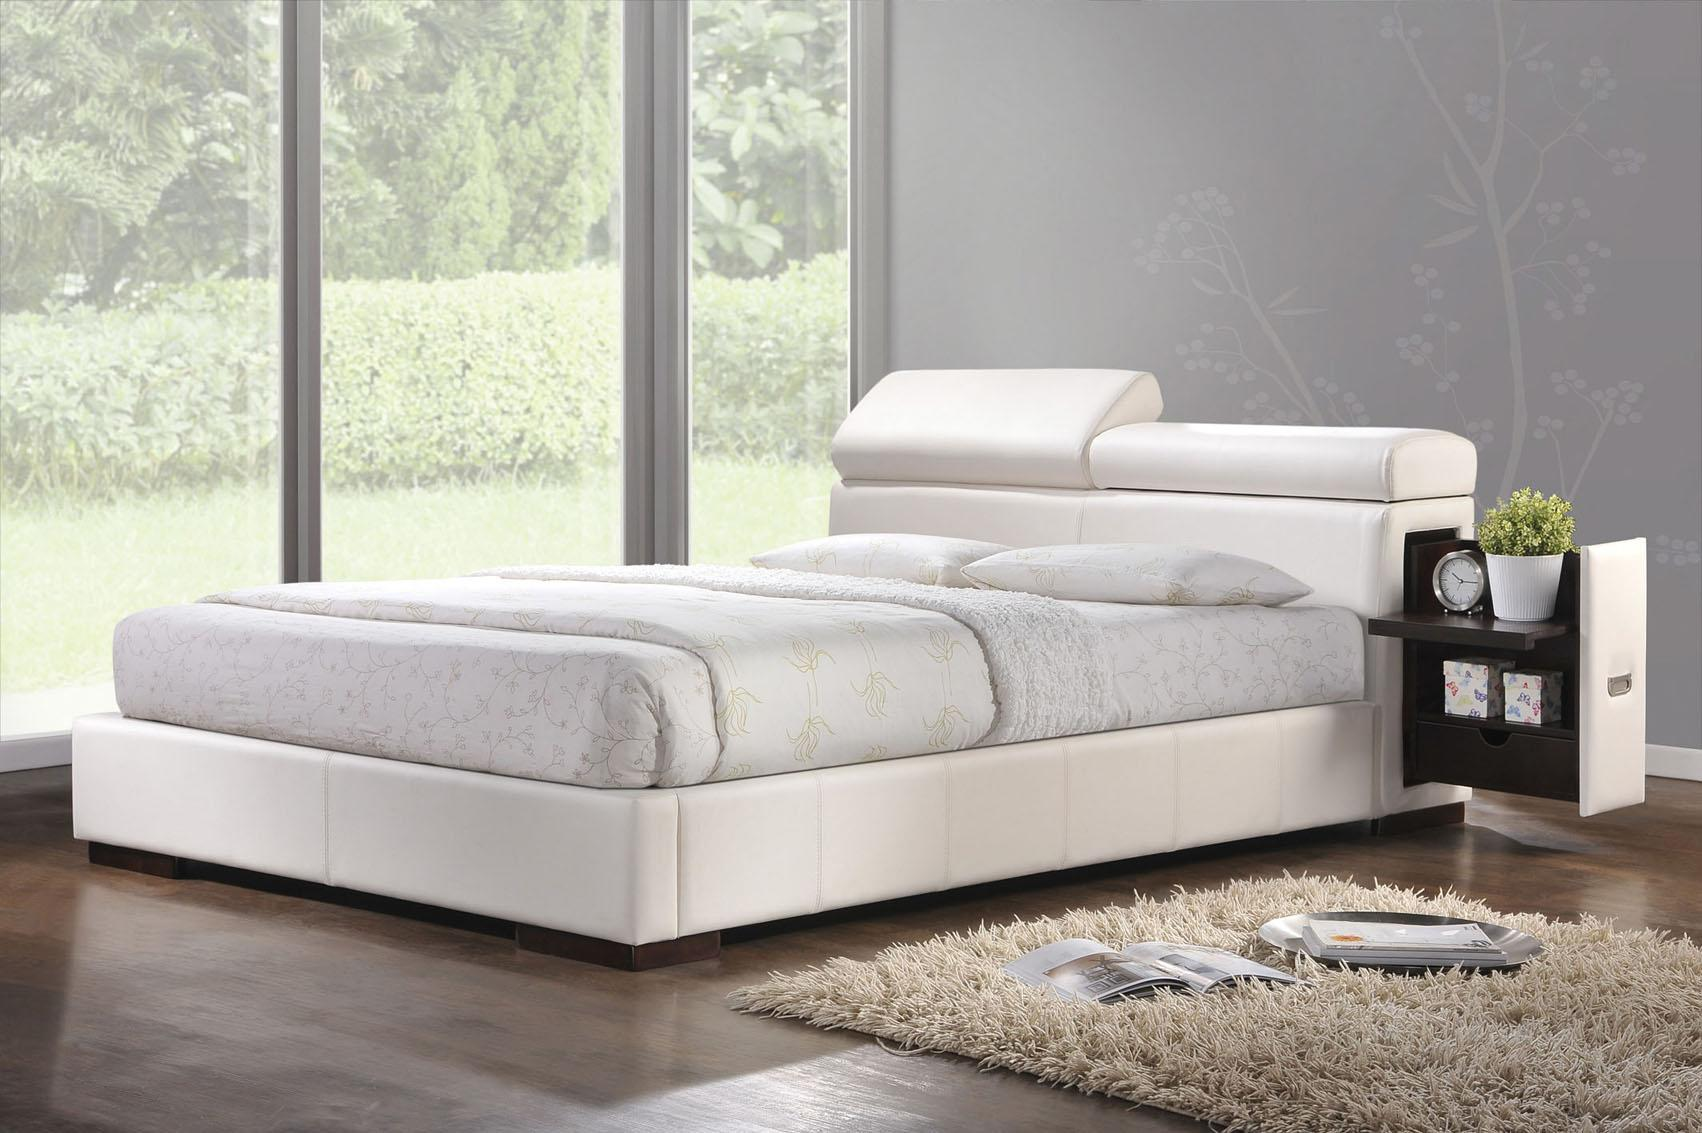 Acme Furniture Manjot Queen Bed - Item Number: 20420Q